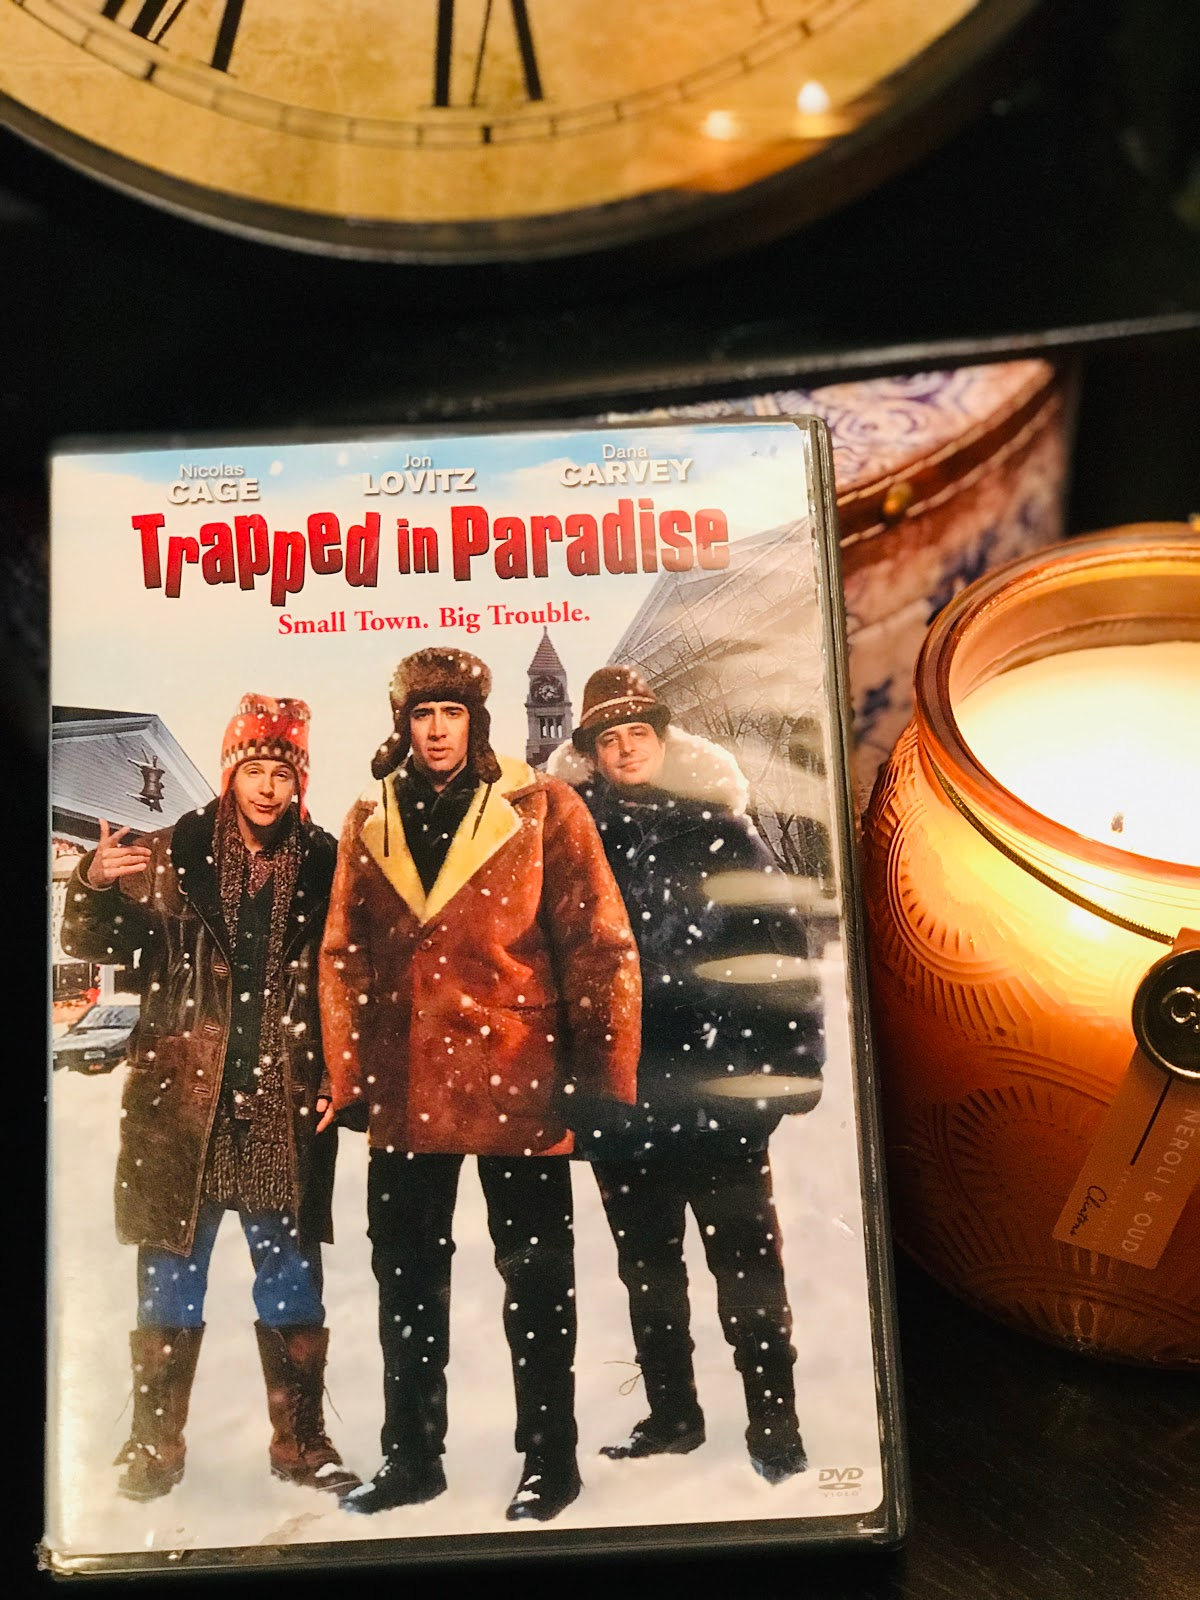 Image: Tangie Bell sharing her weekend movie Trapped in Paradise. Seen first on Bits and Babbles Blog